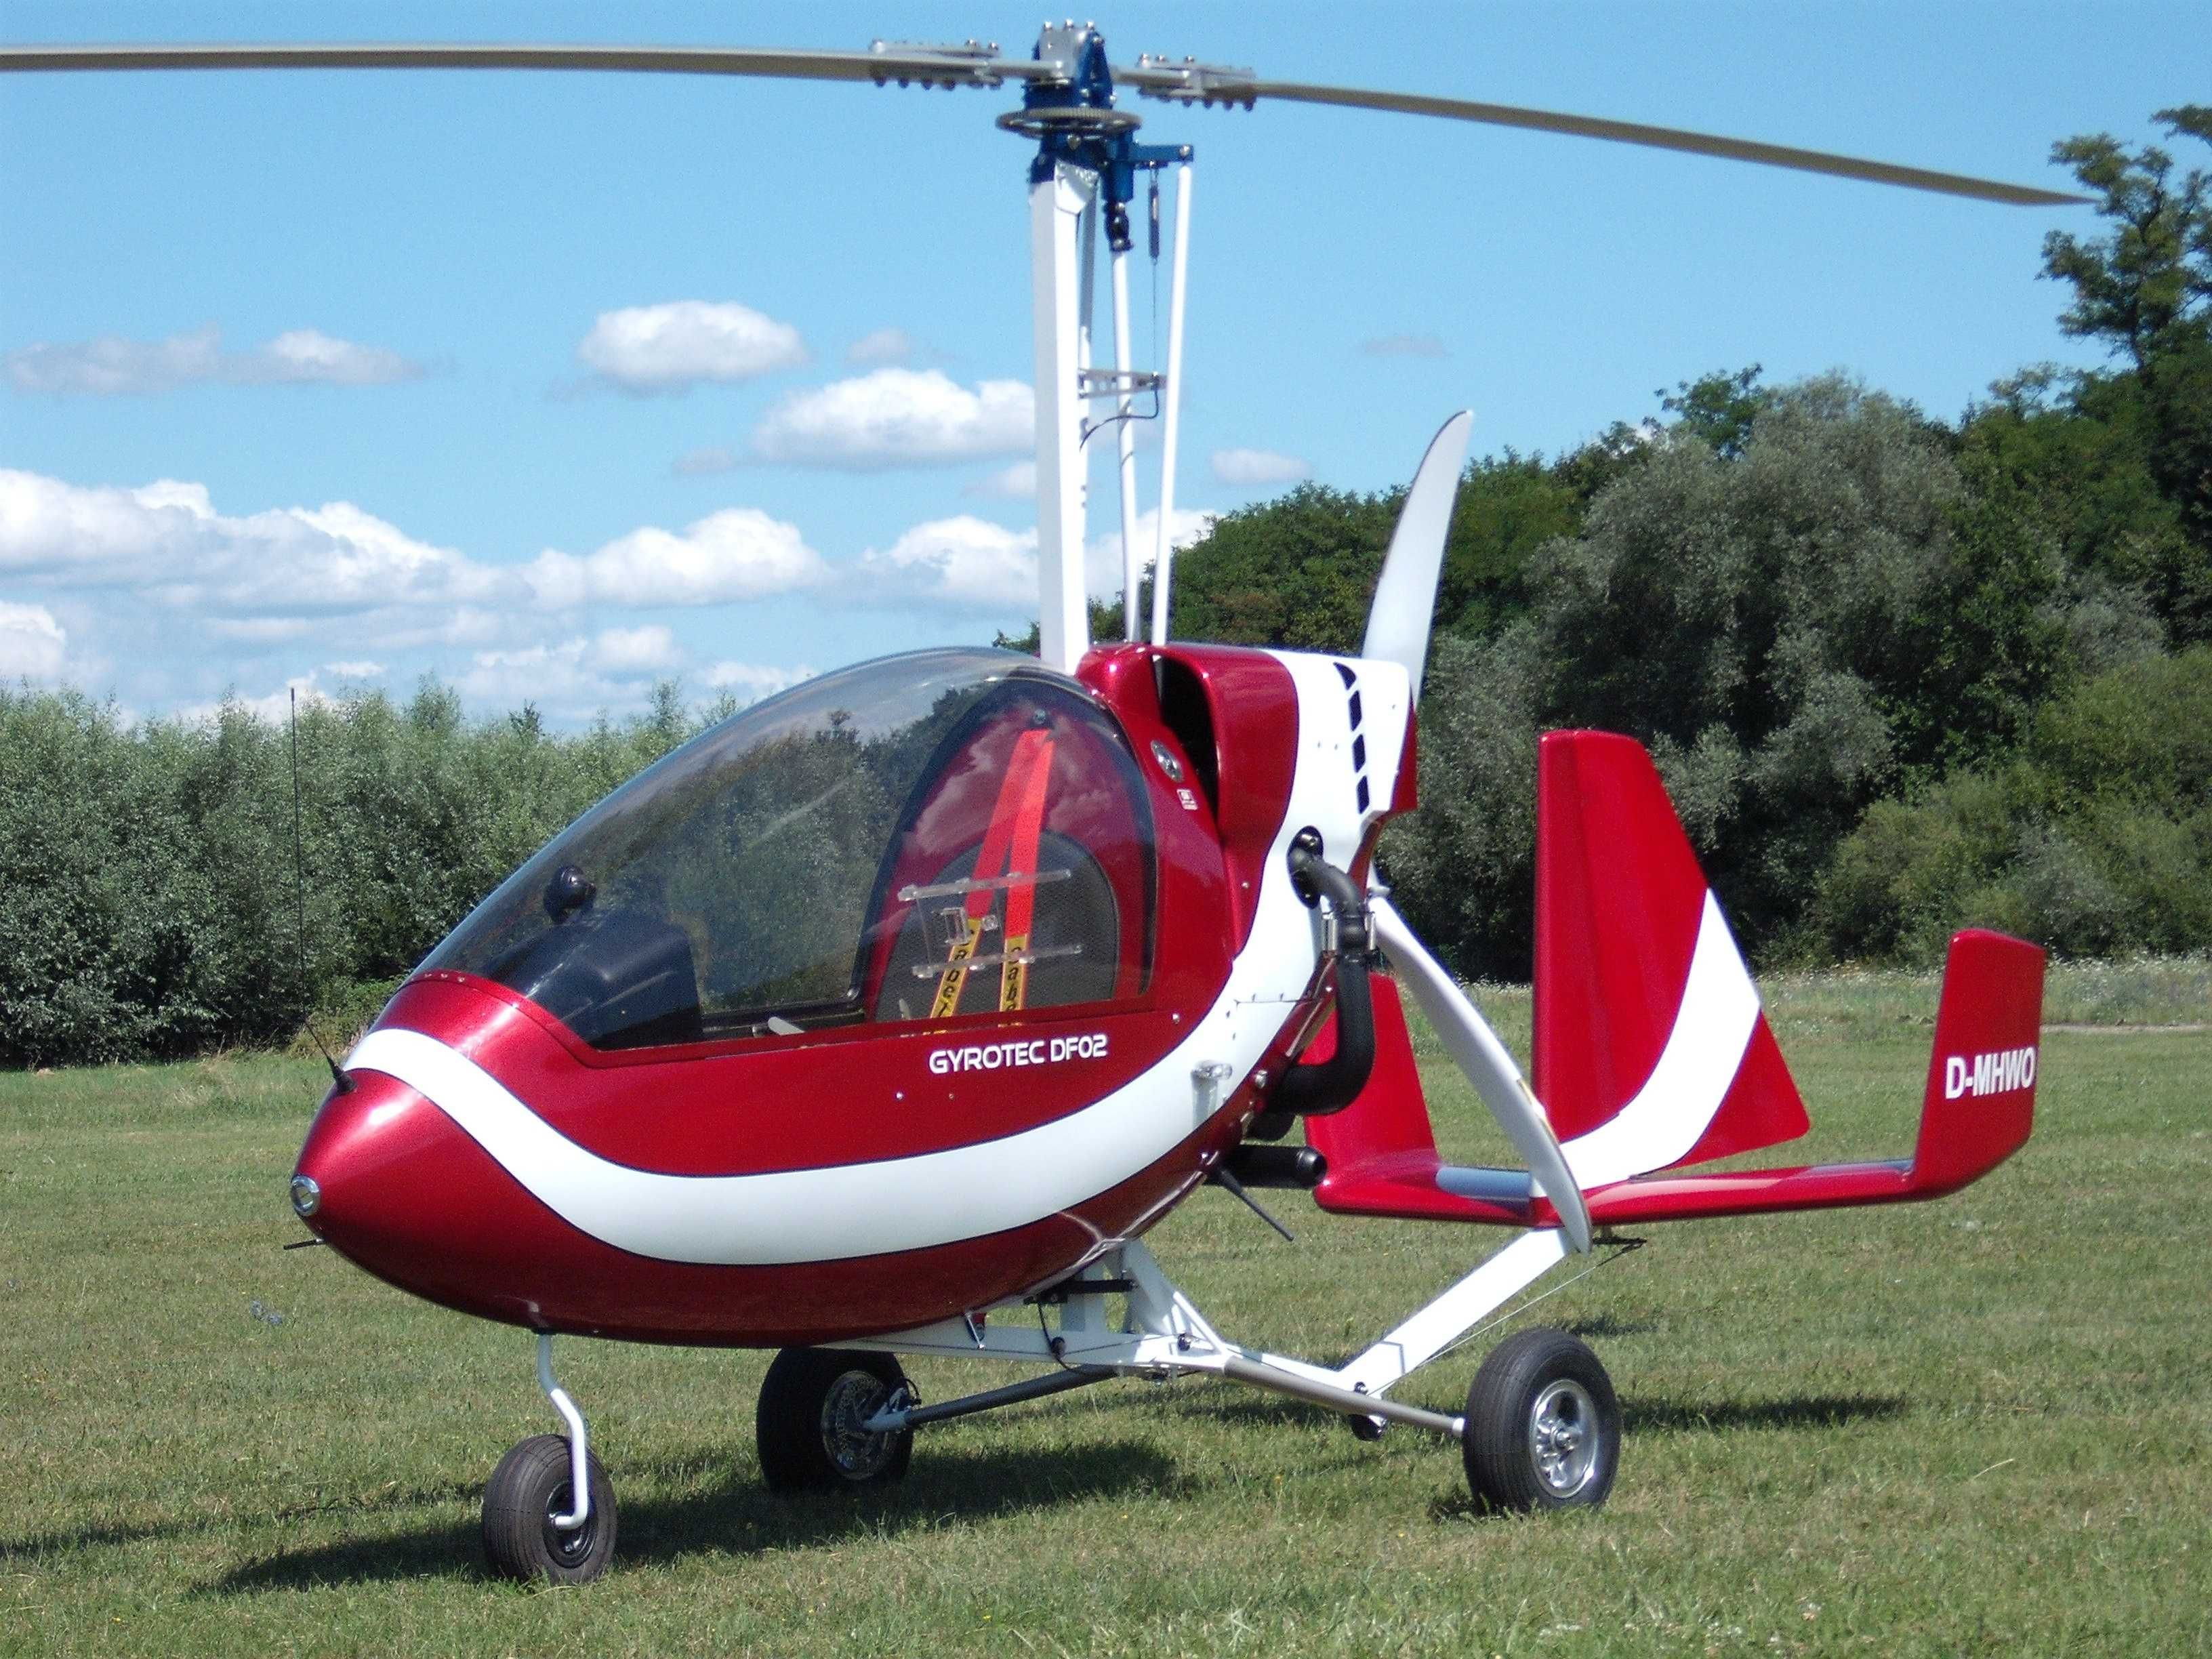 GYROTEC DF02 gyroplane - Single seat enclosed  This autogyro